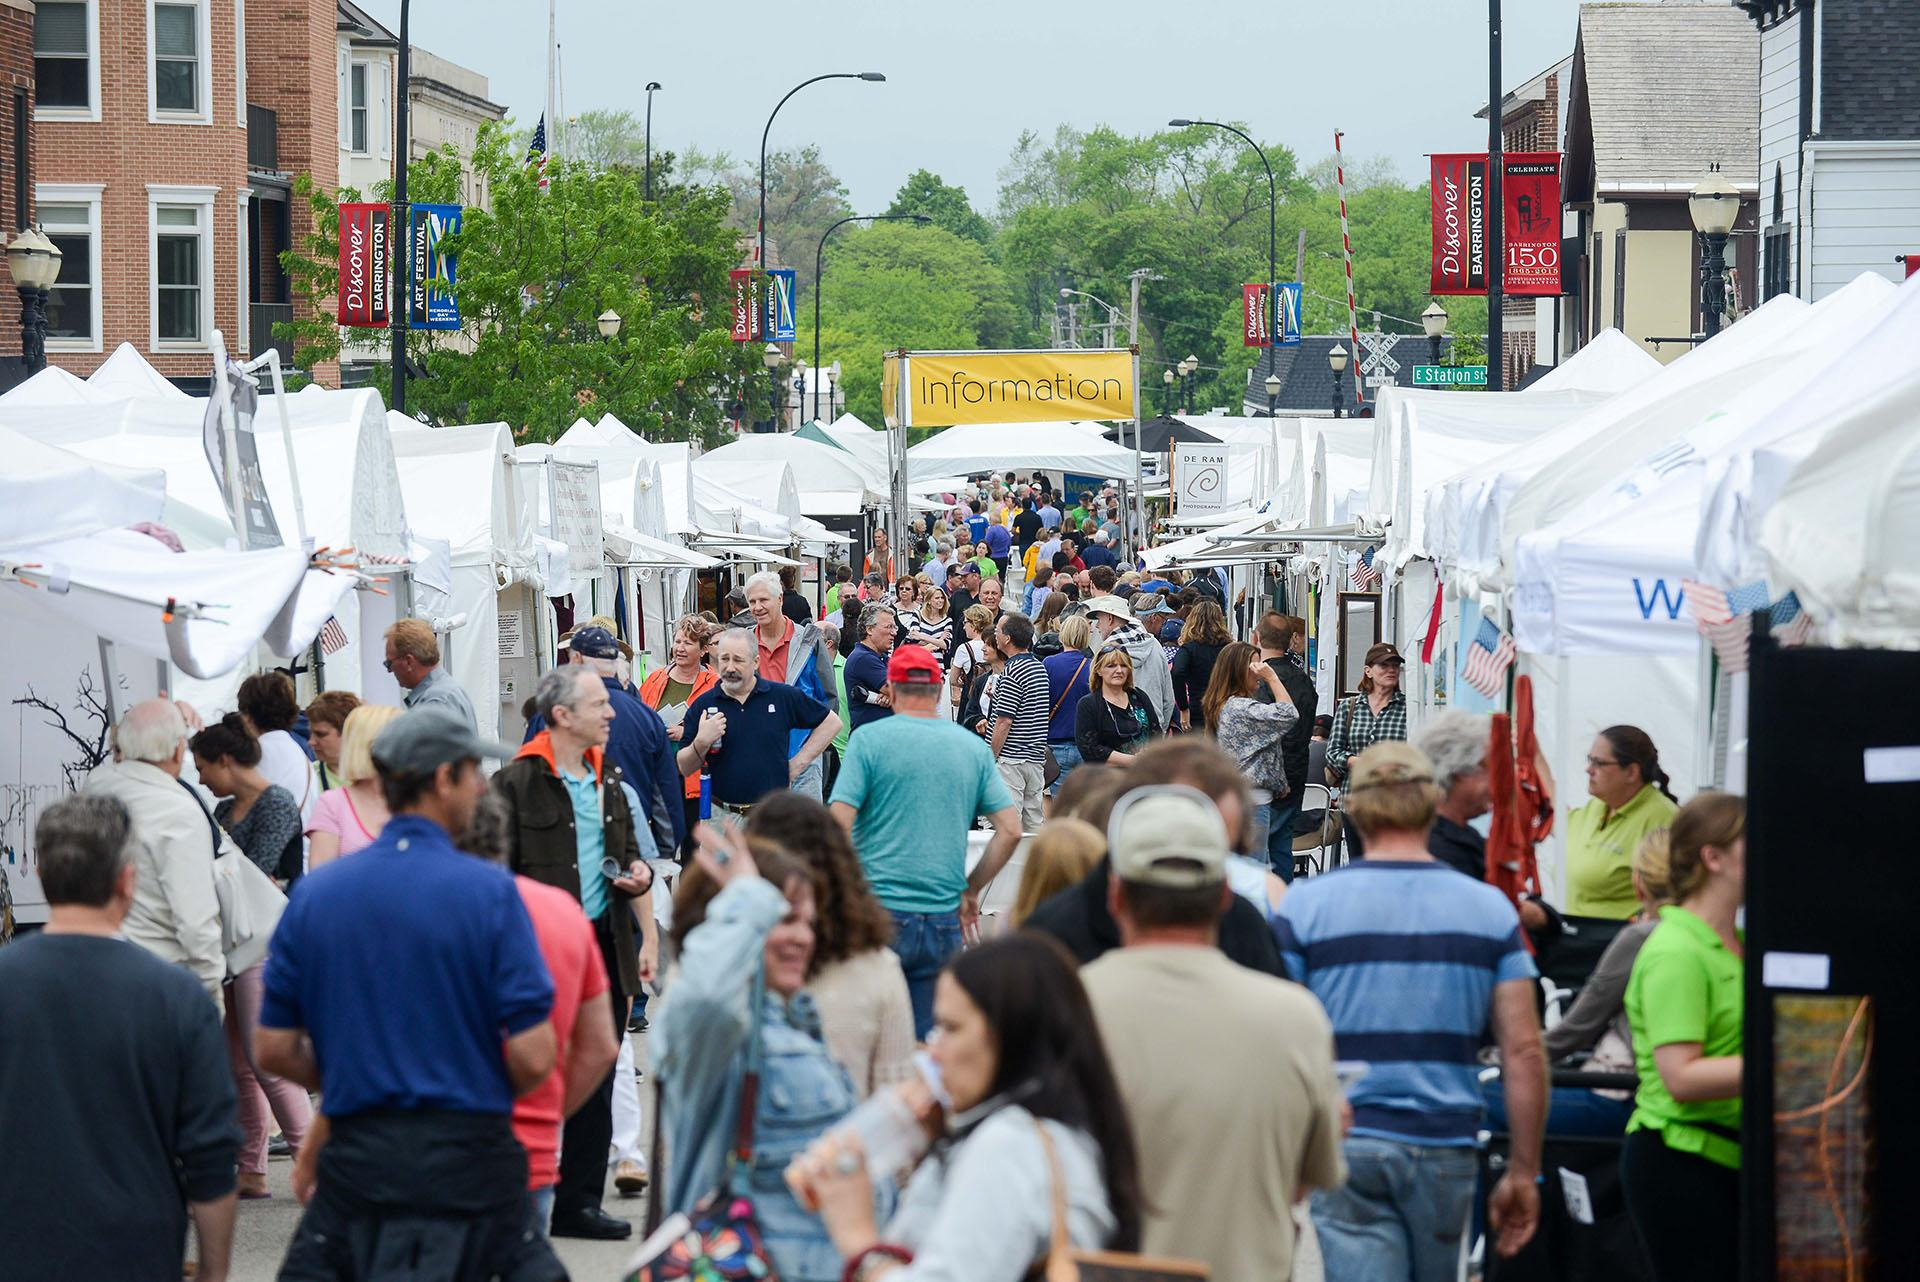 The Barrington Art Festival, originally scheduled for Memorial Day weekend, has been rescheduled because of the COVID-19 pandemic. The festivals is now slated for Sept. 12-13. (Courtesy of Amdur Productions)